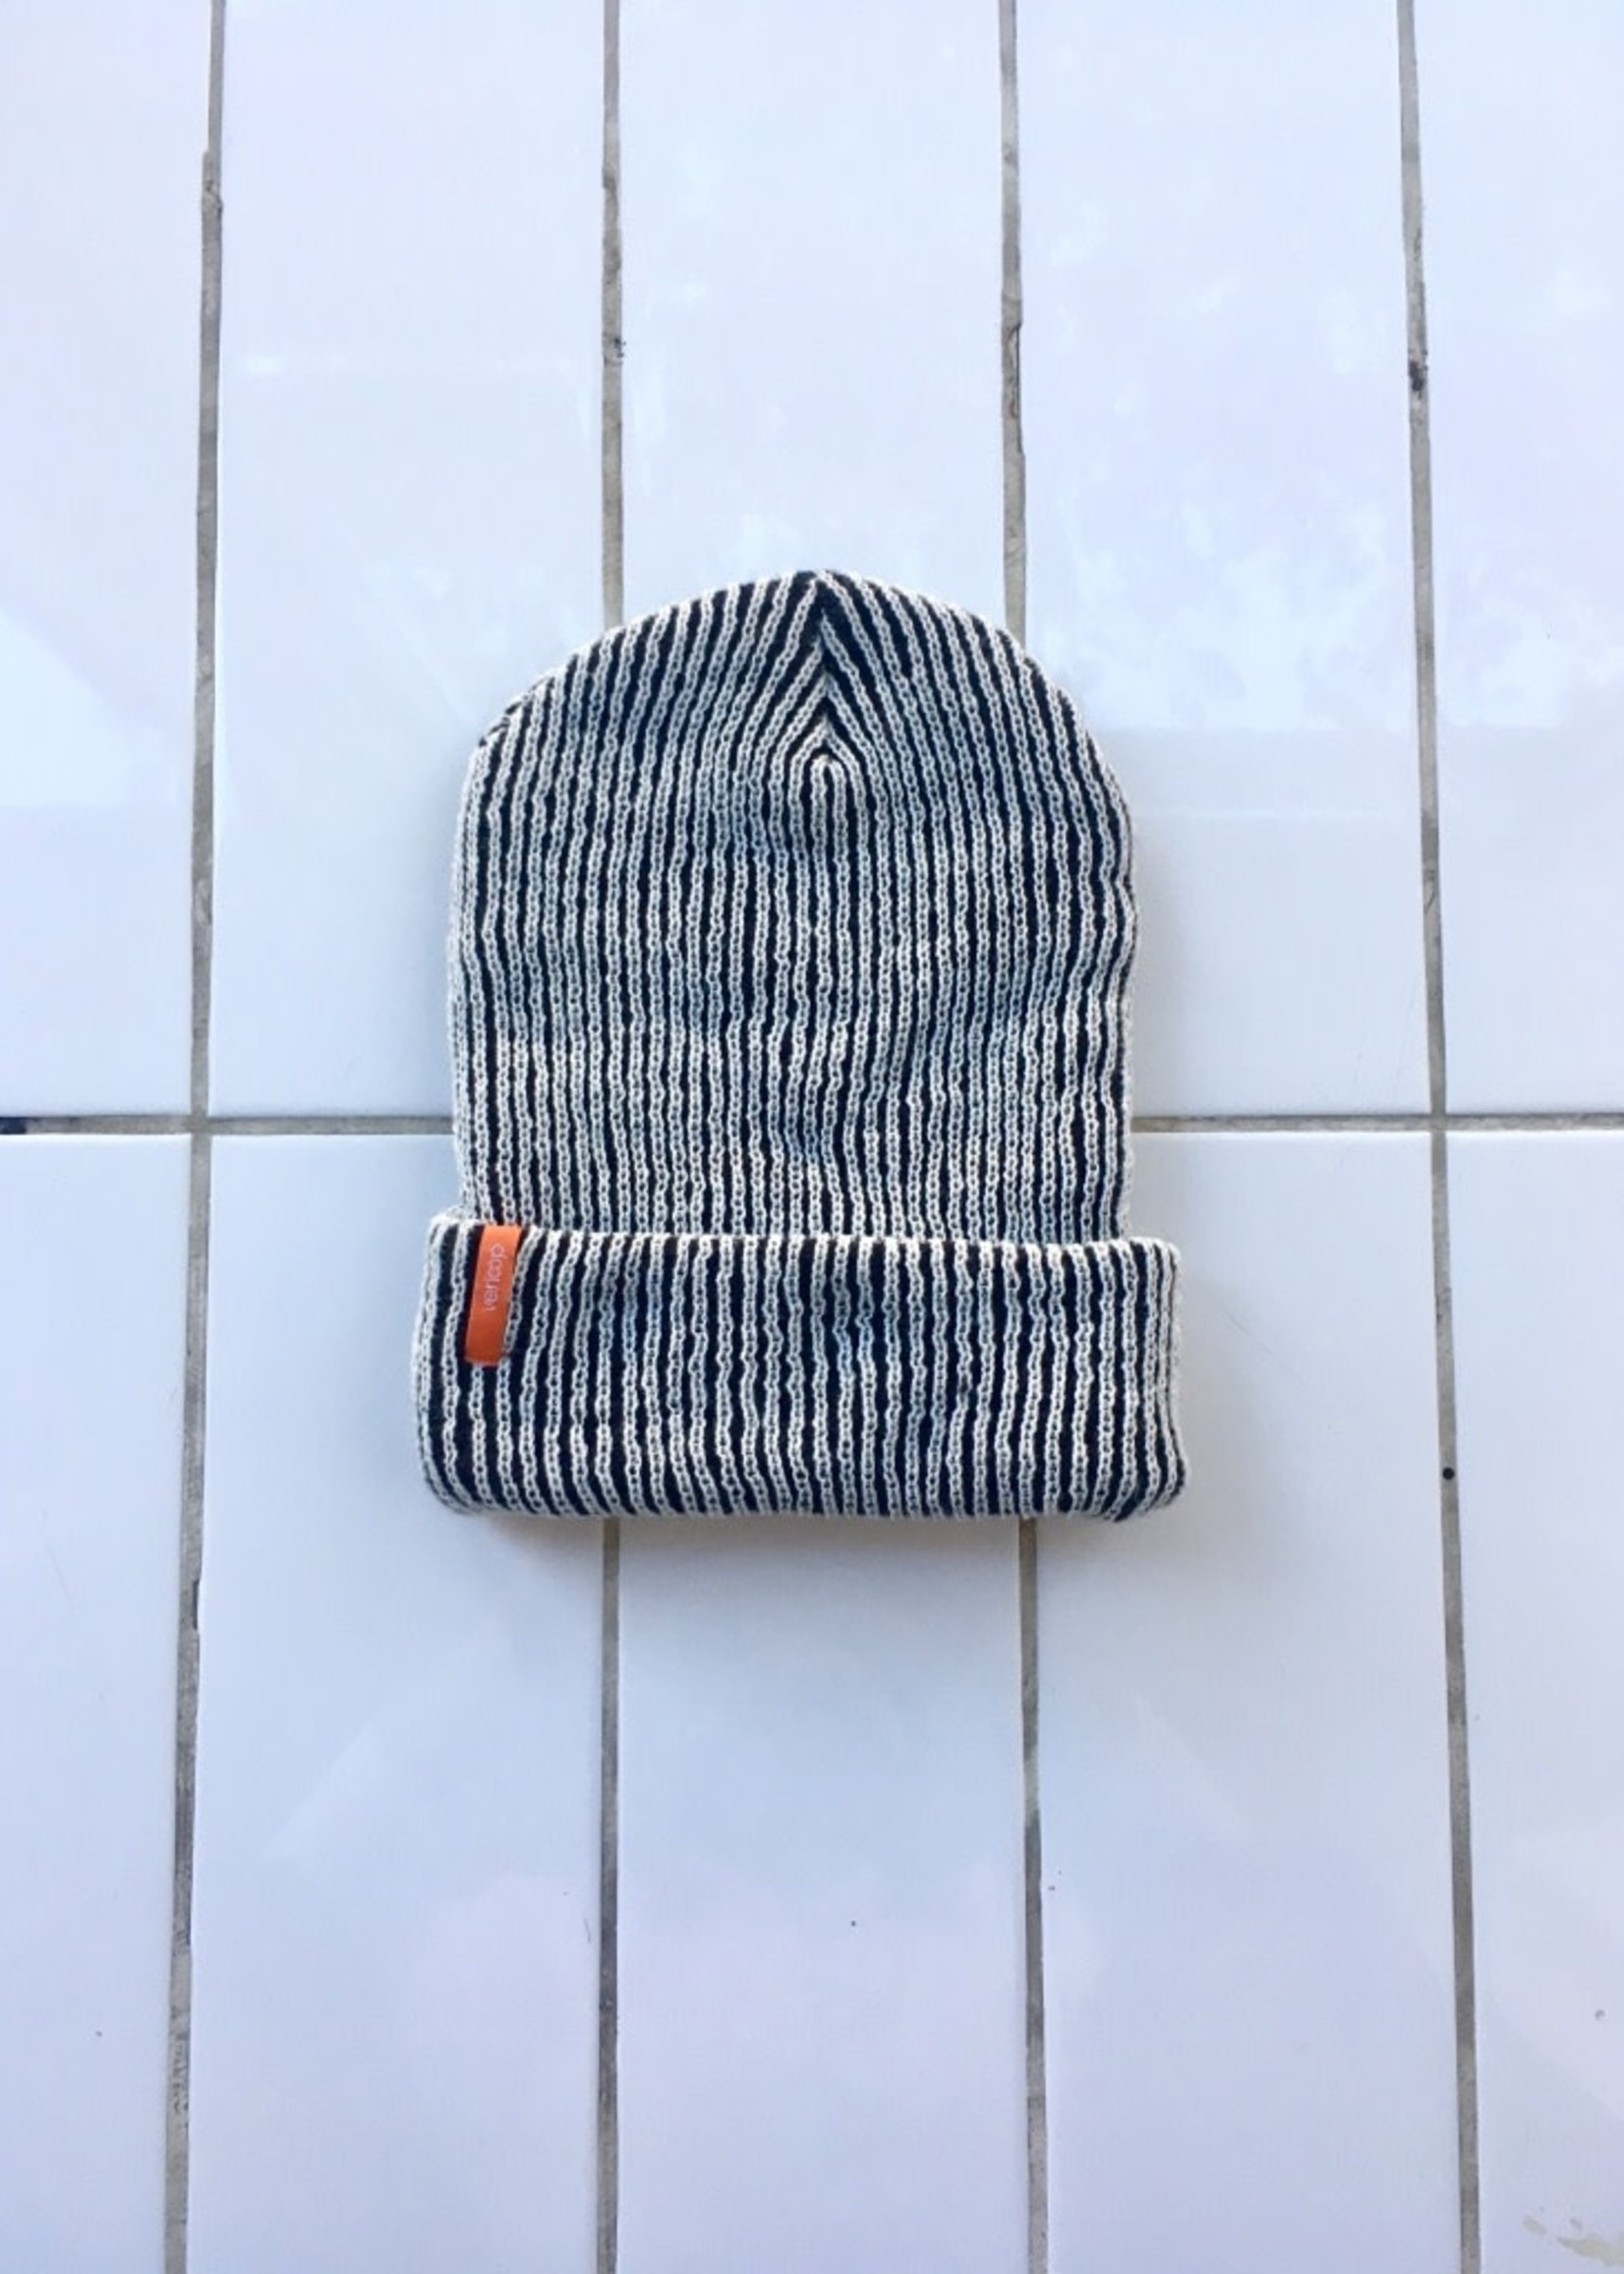 Verloop Verloop simple rib hats